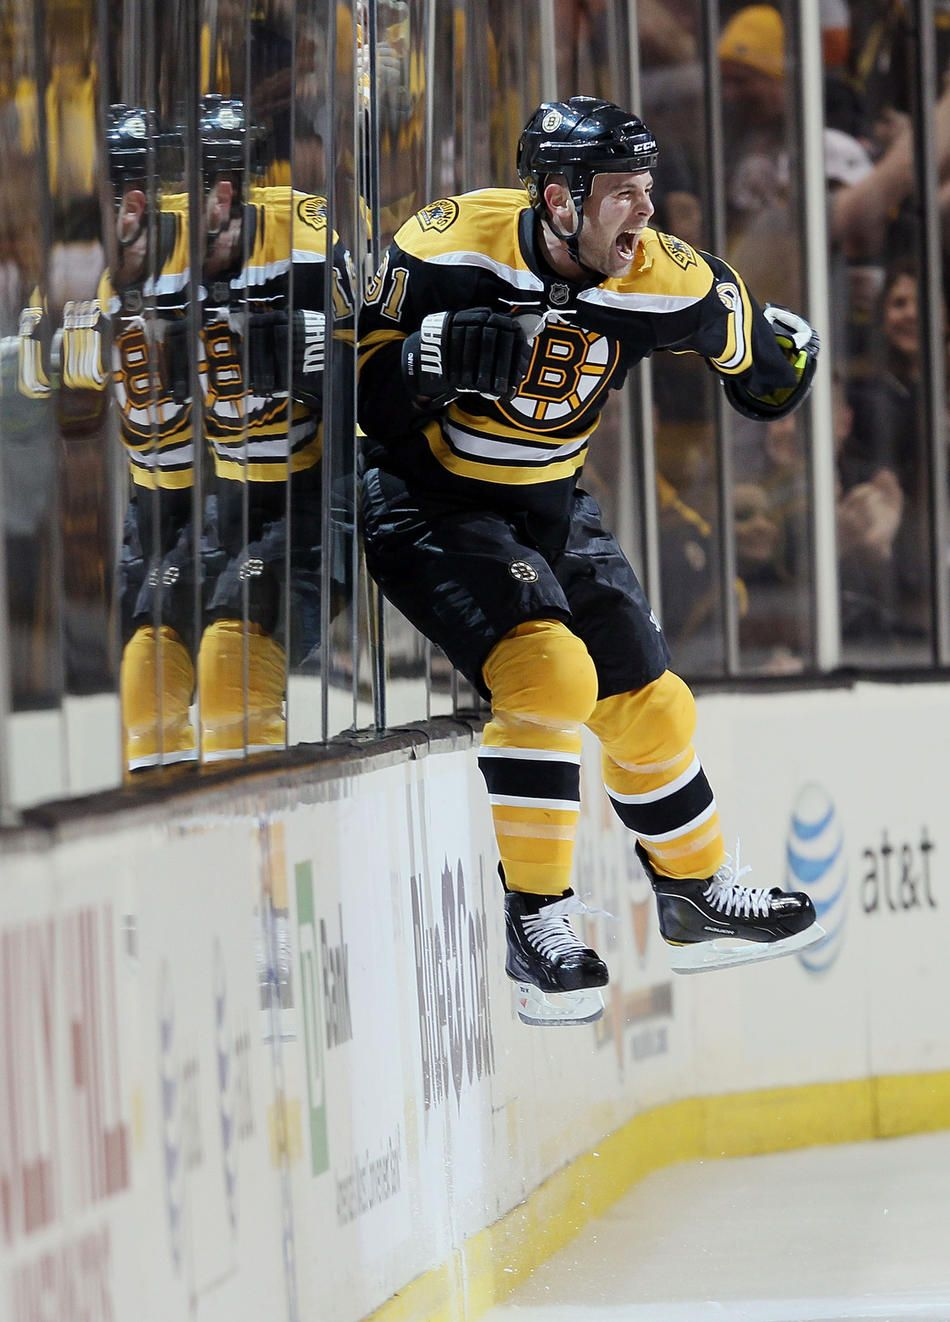 Not Sure I Ve Ever Seen Such A Cool Reflection In The Glass For Hockey Before Boston Hockey Boston Bruins Hockey Bruins Hockey